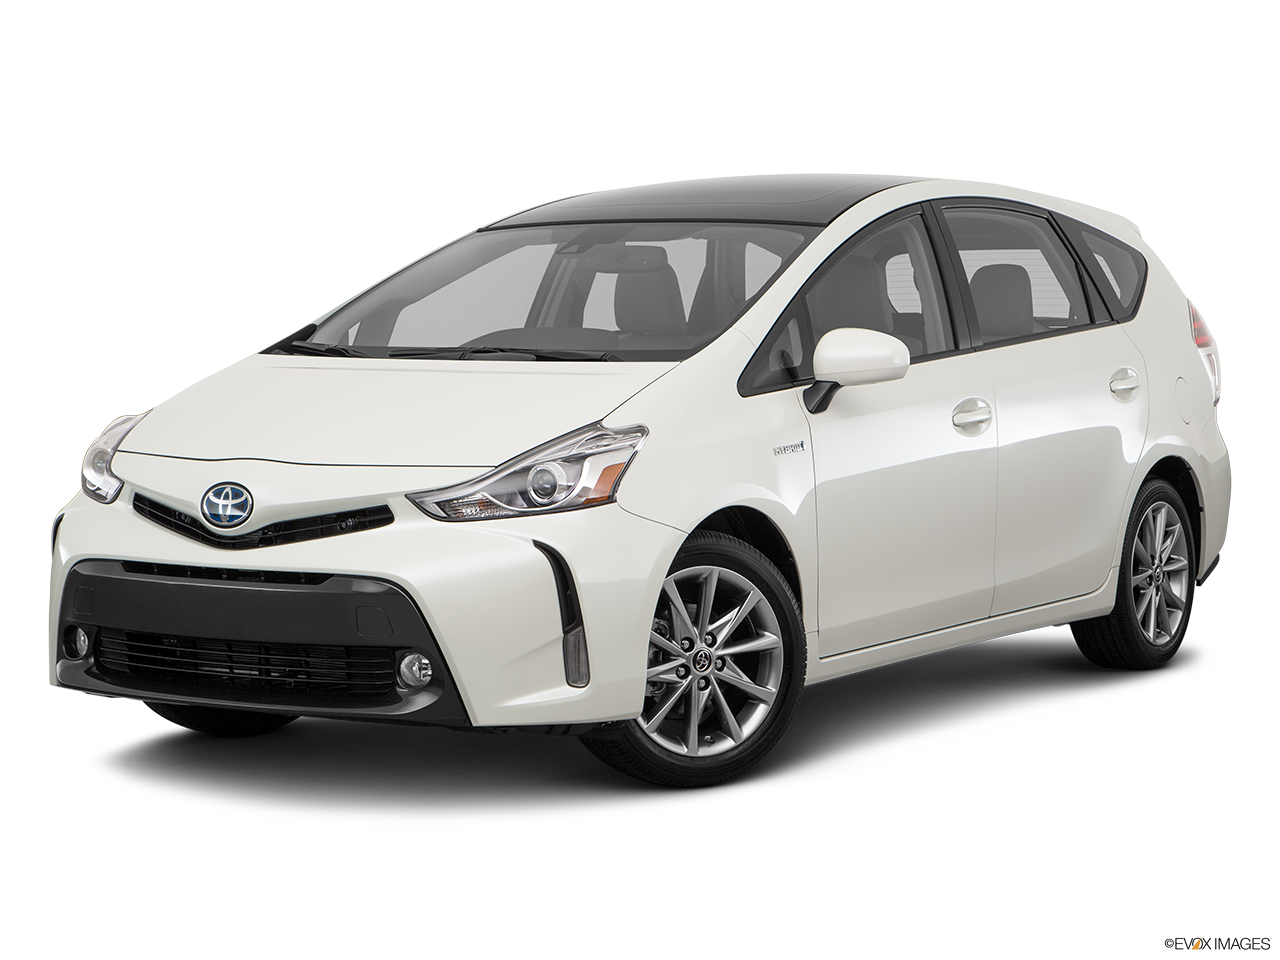 Test Drive A 2017 Toyota Prius v at Toyota of Glendale